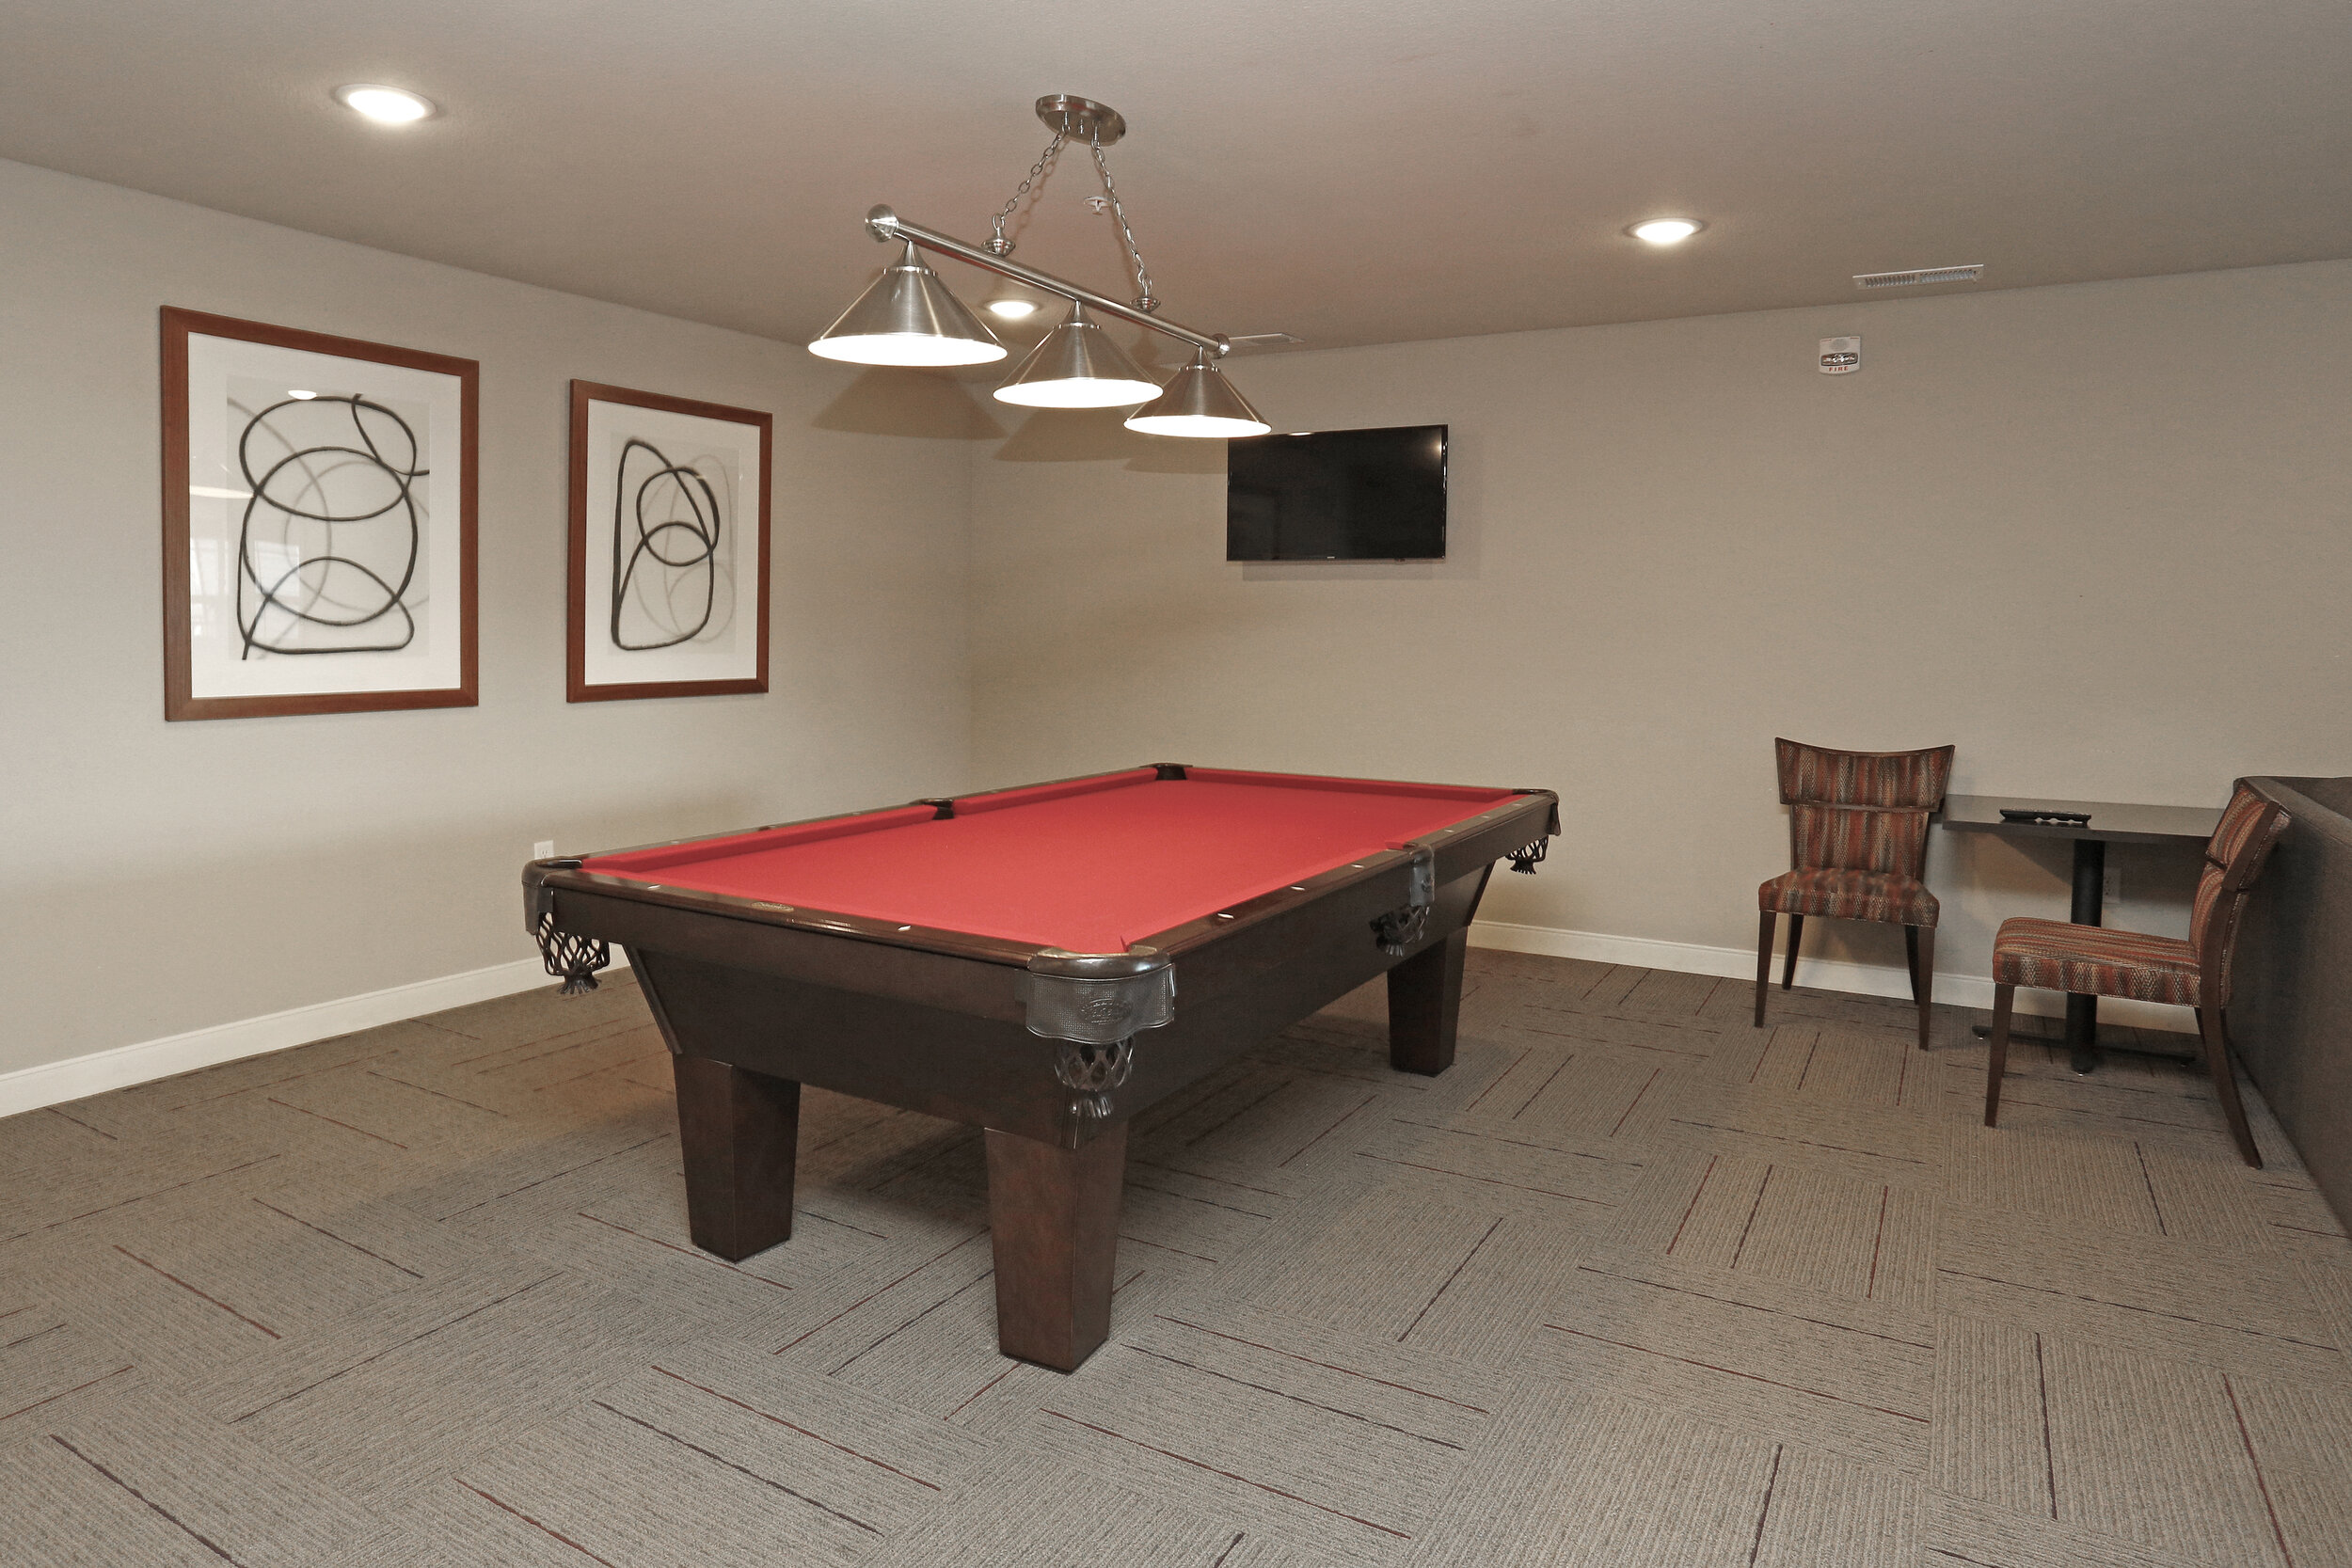 09 Challenge a Friend to Game of Pool.jpg